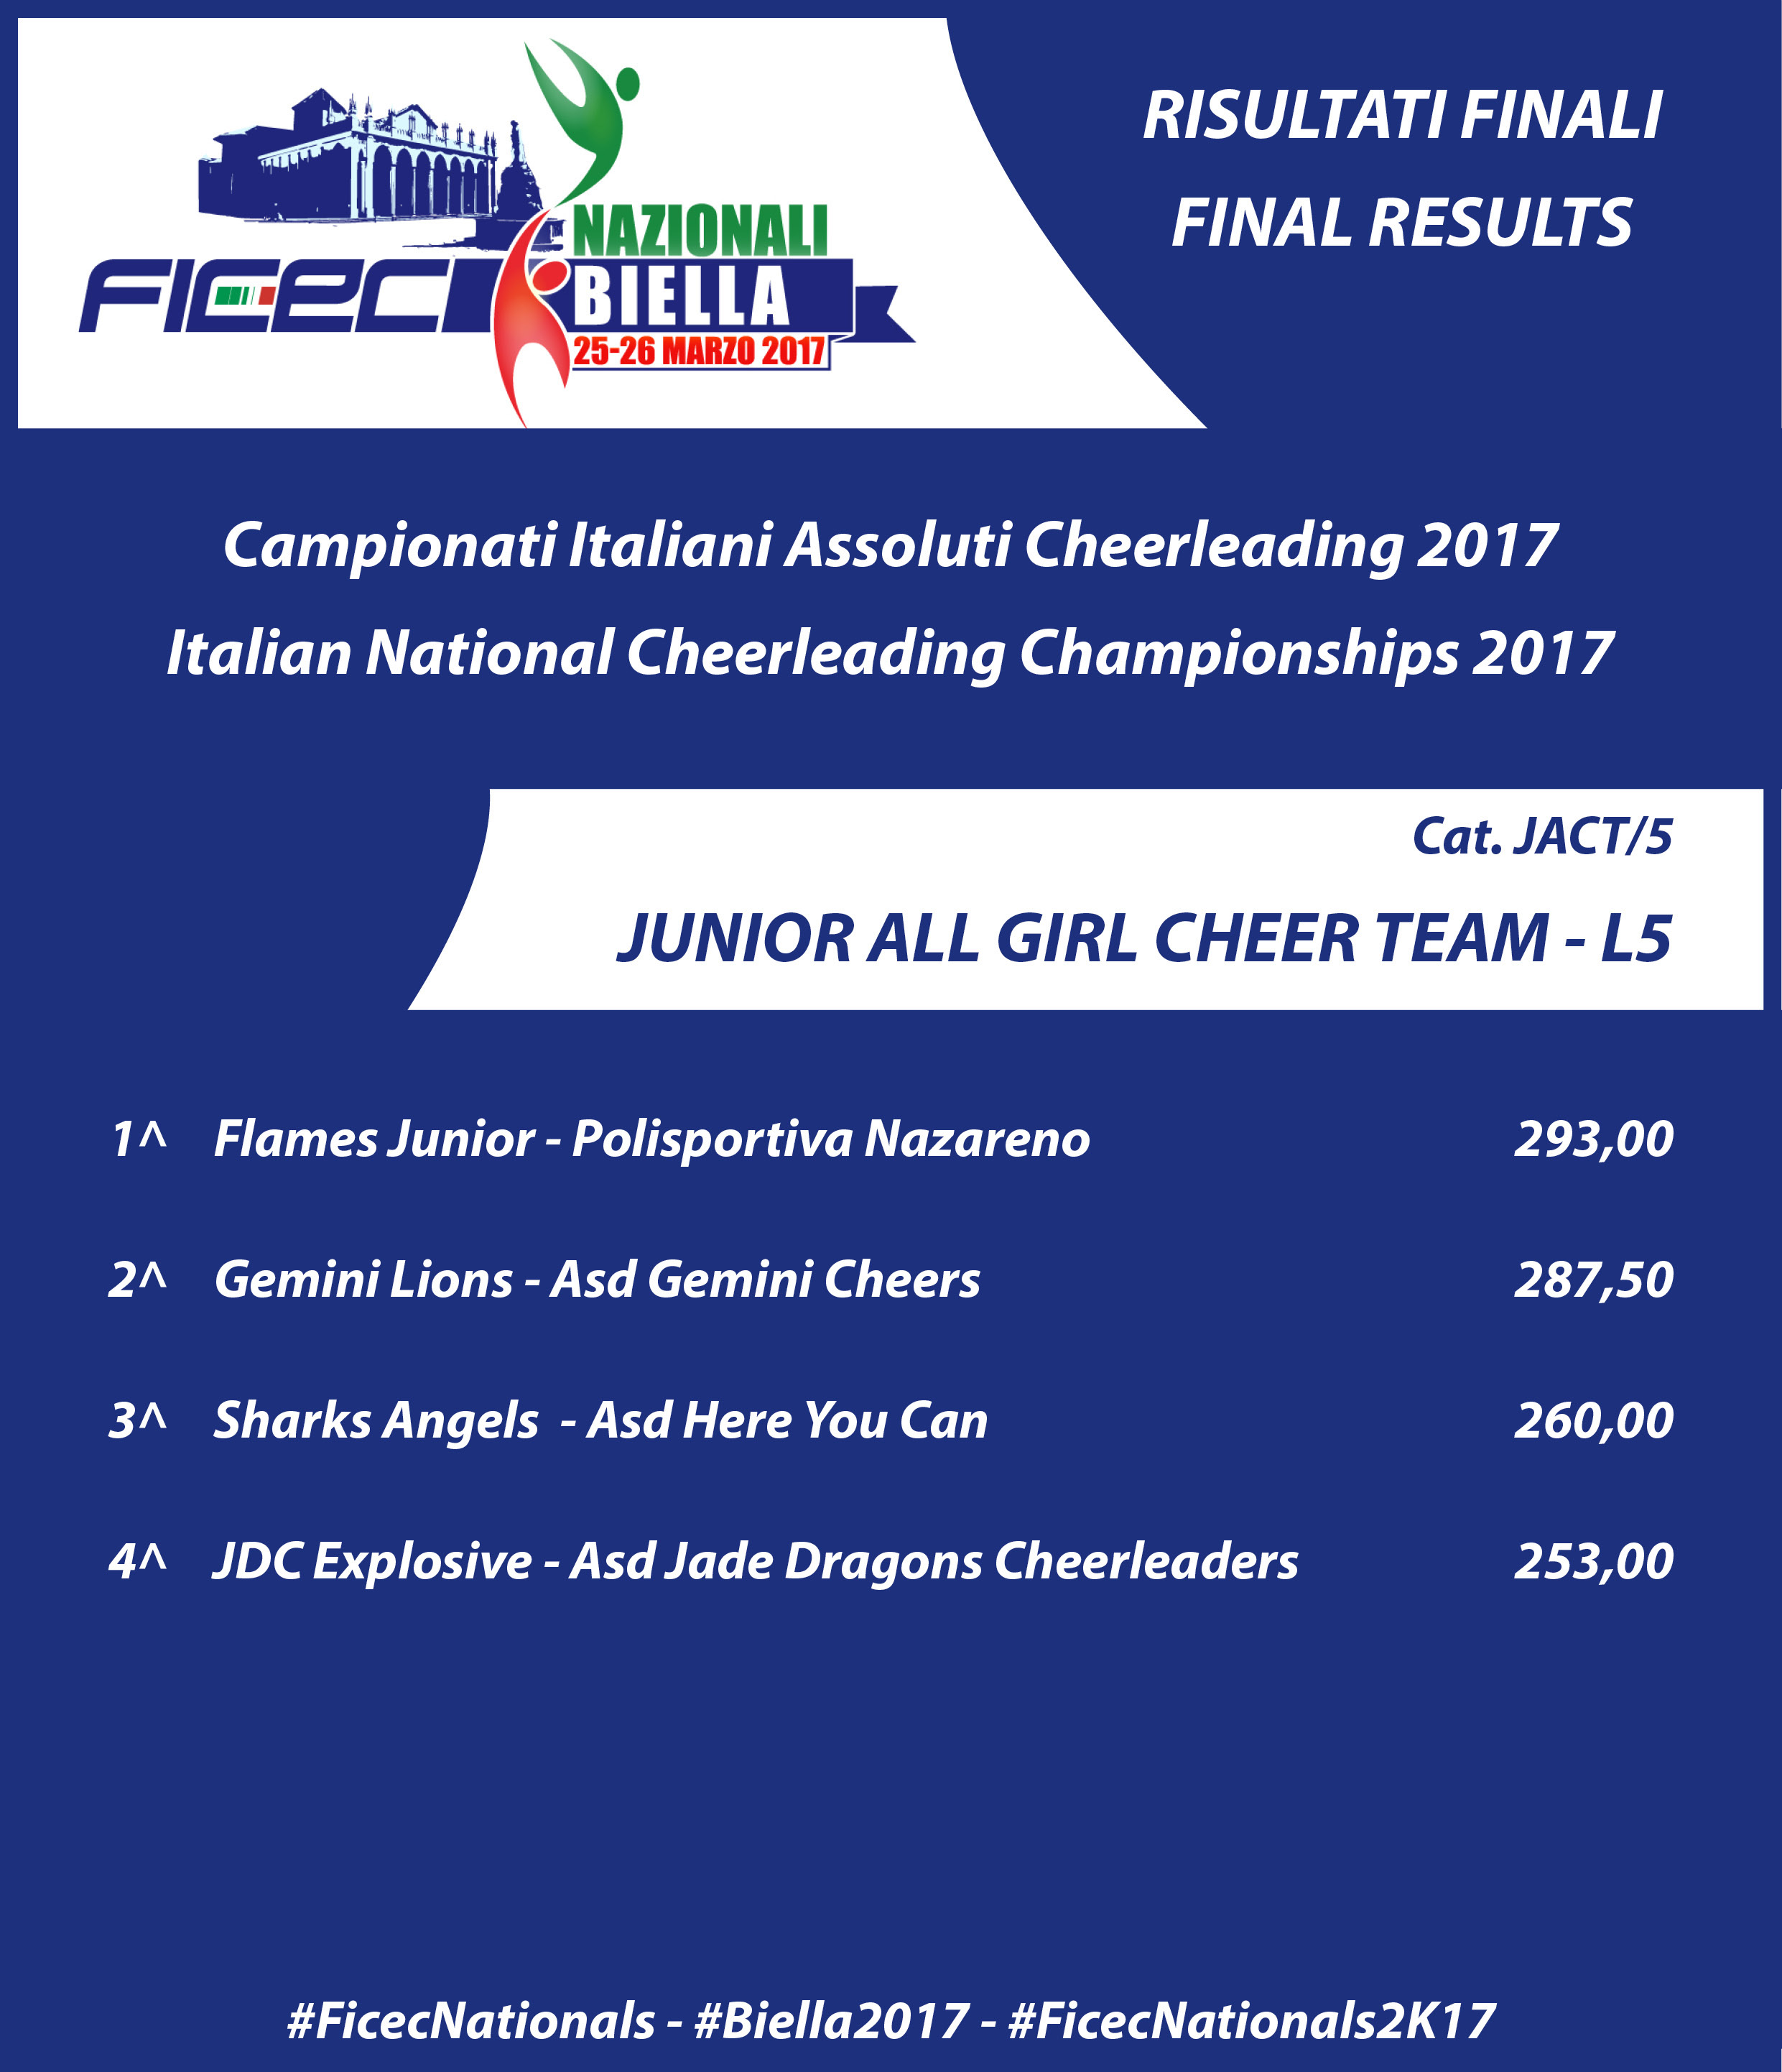 RESULTS nationals 2017 JACT 5